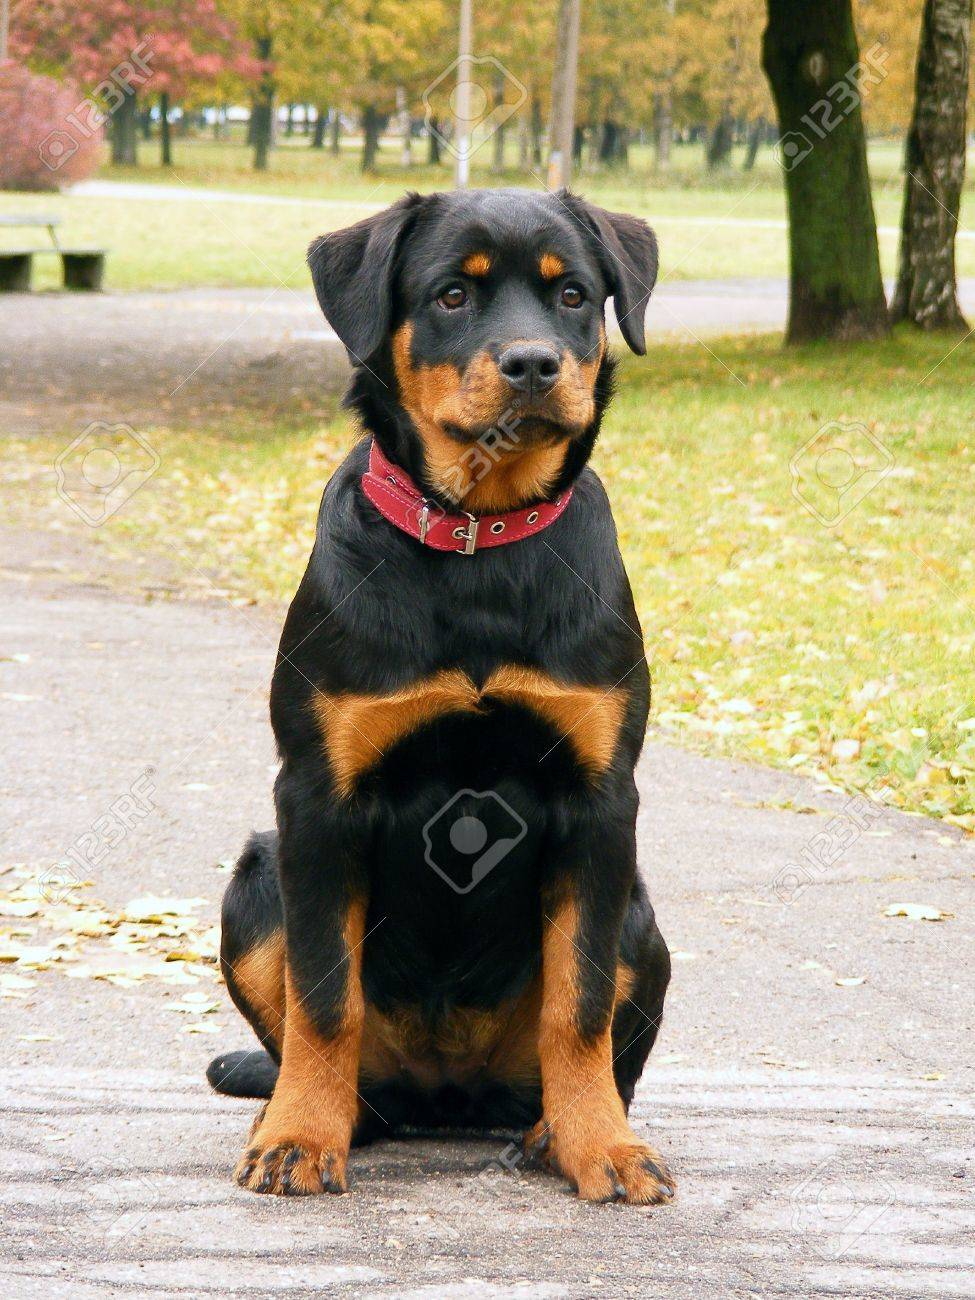 Rottweiler Pup In The Alleyway Stock Photo Picture And Royalty Free